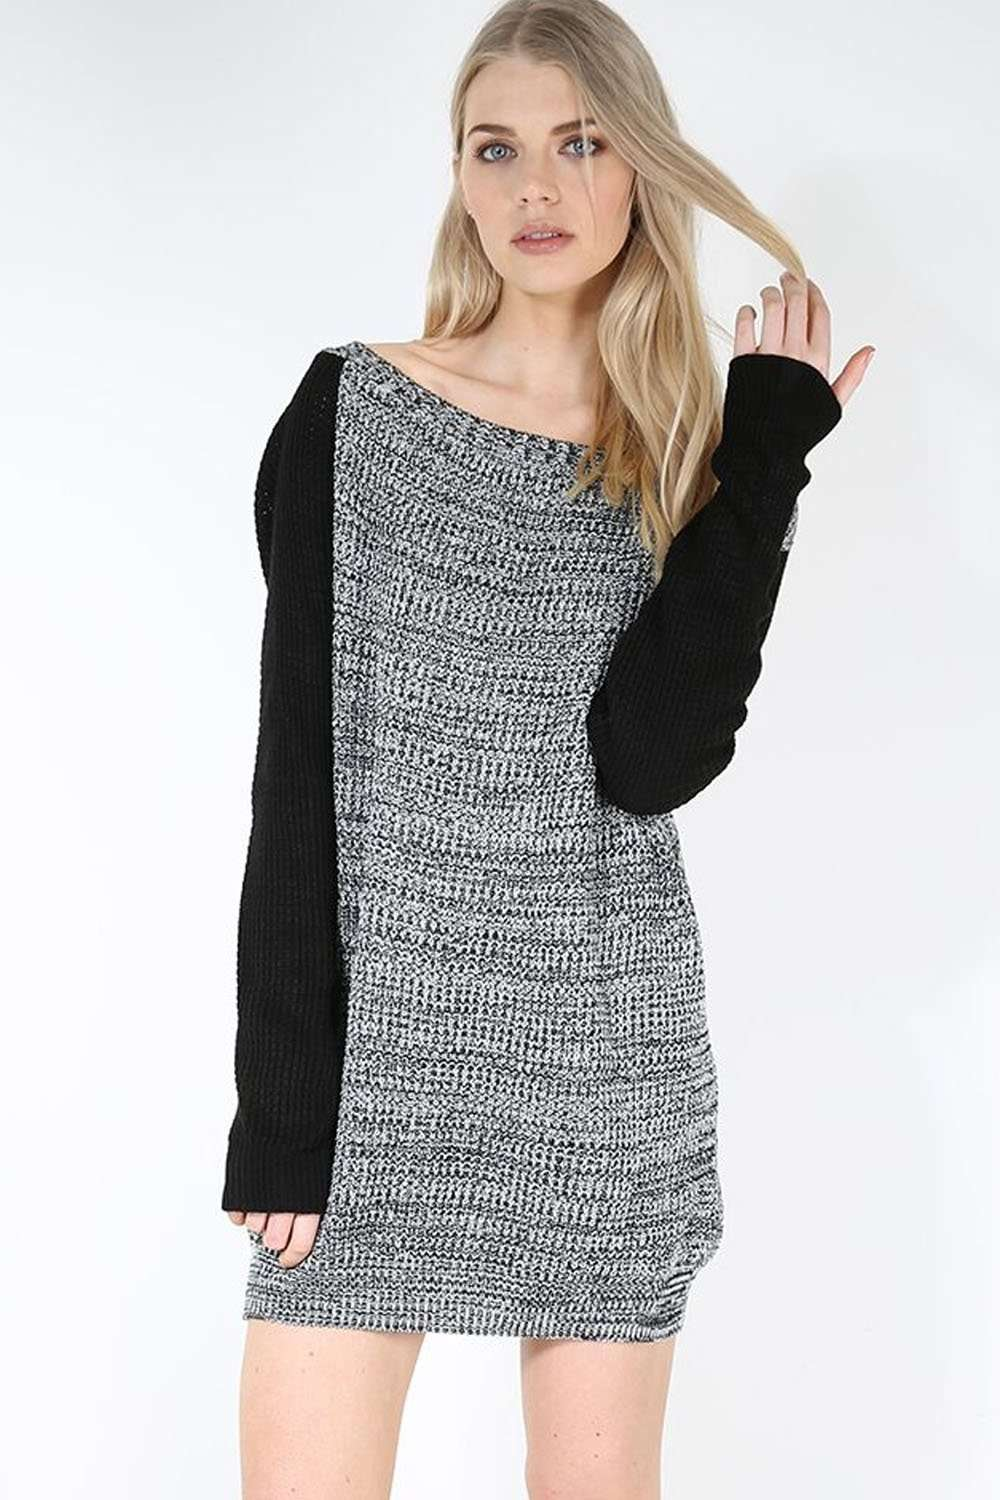 Off Shoulder Black Knitted Jumper Dress - bejealous-com